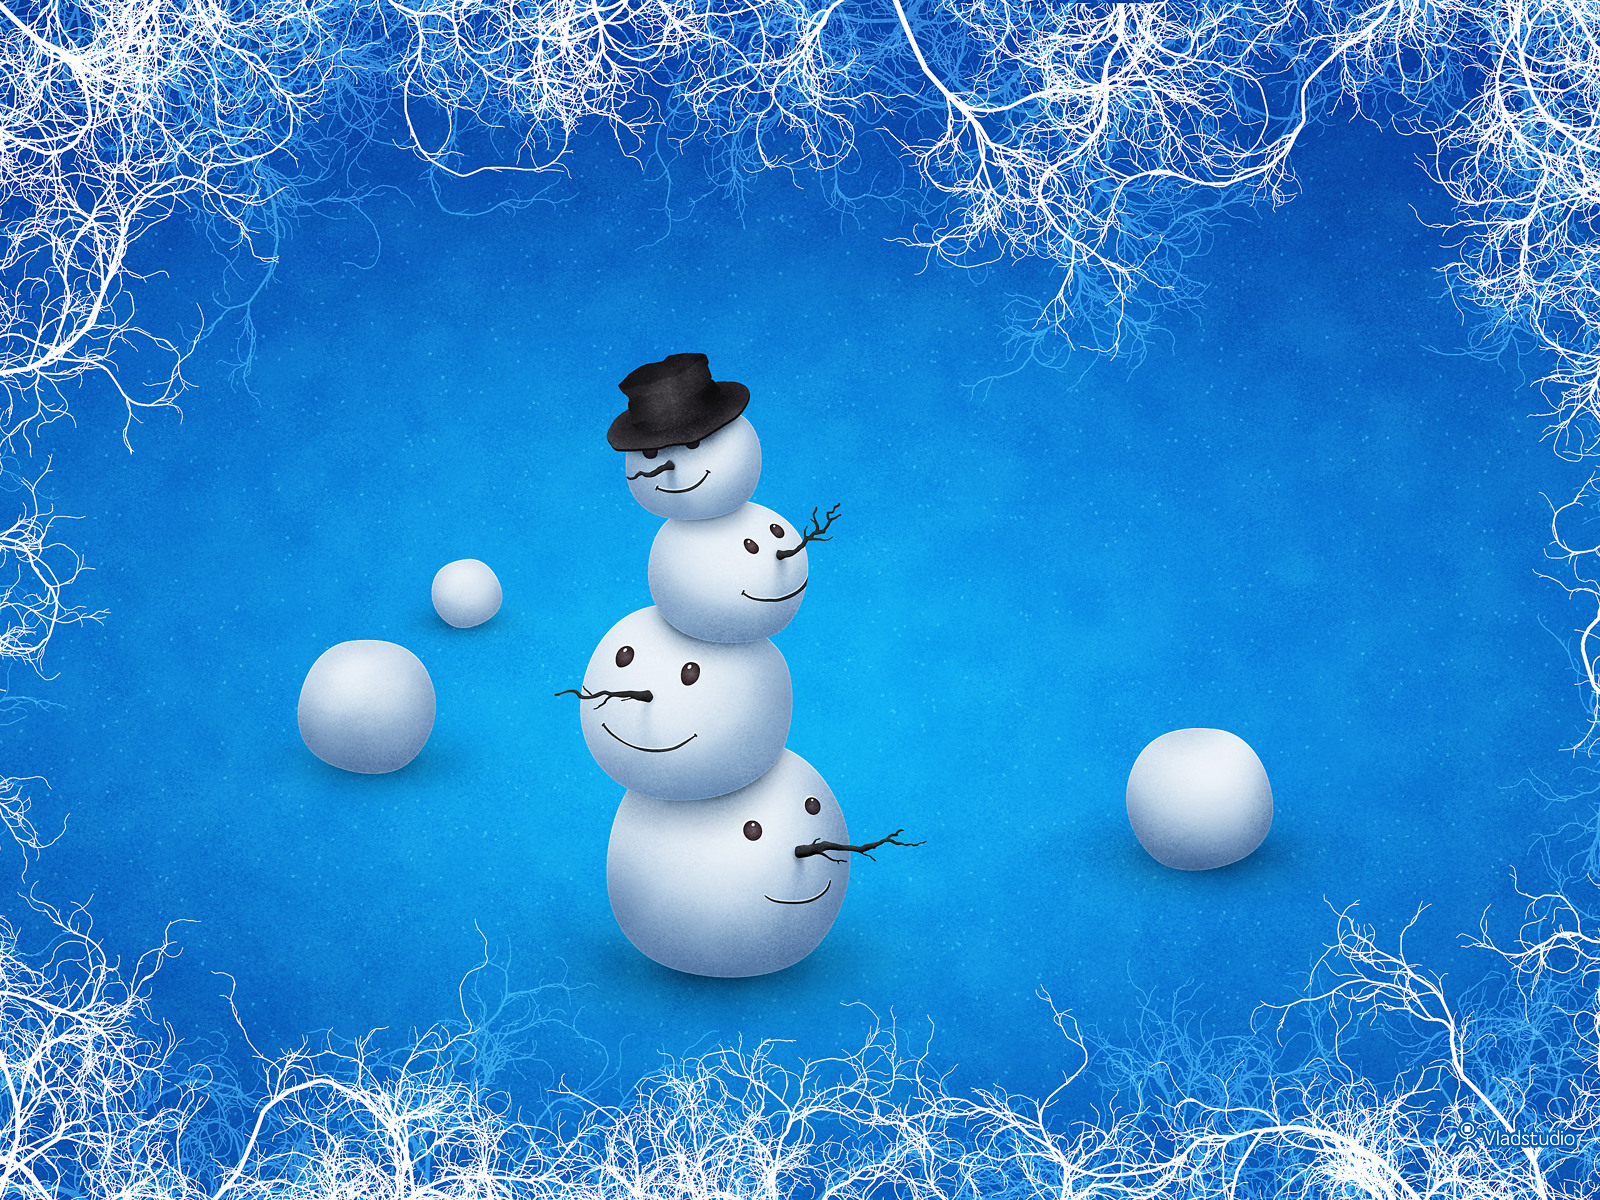 The Merry Snowman by vladstudio